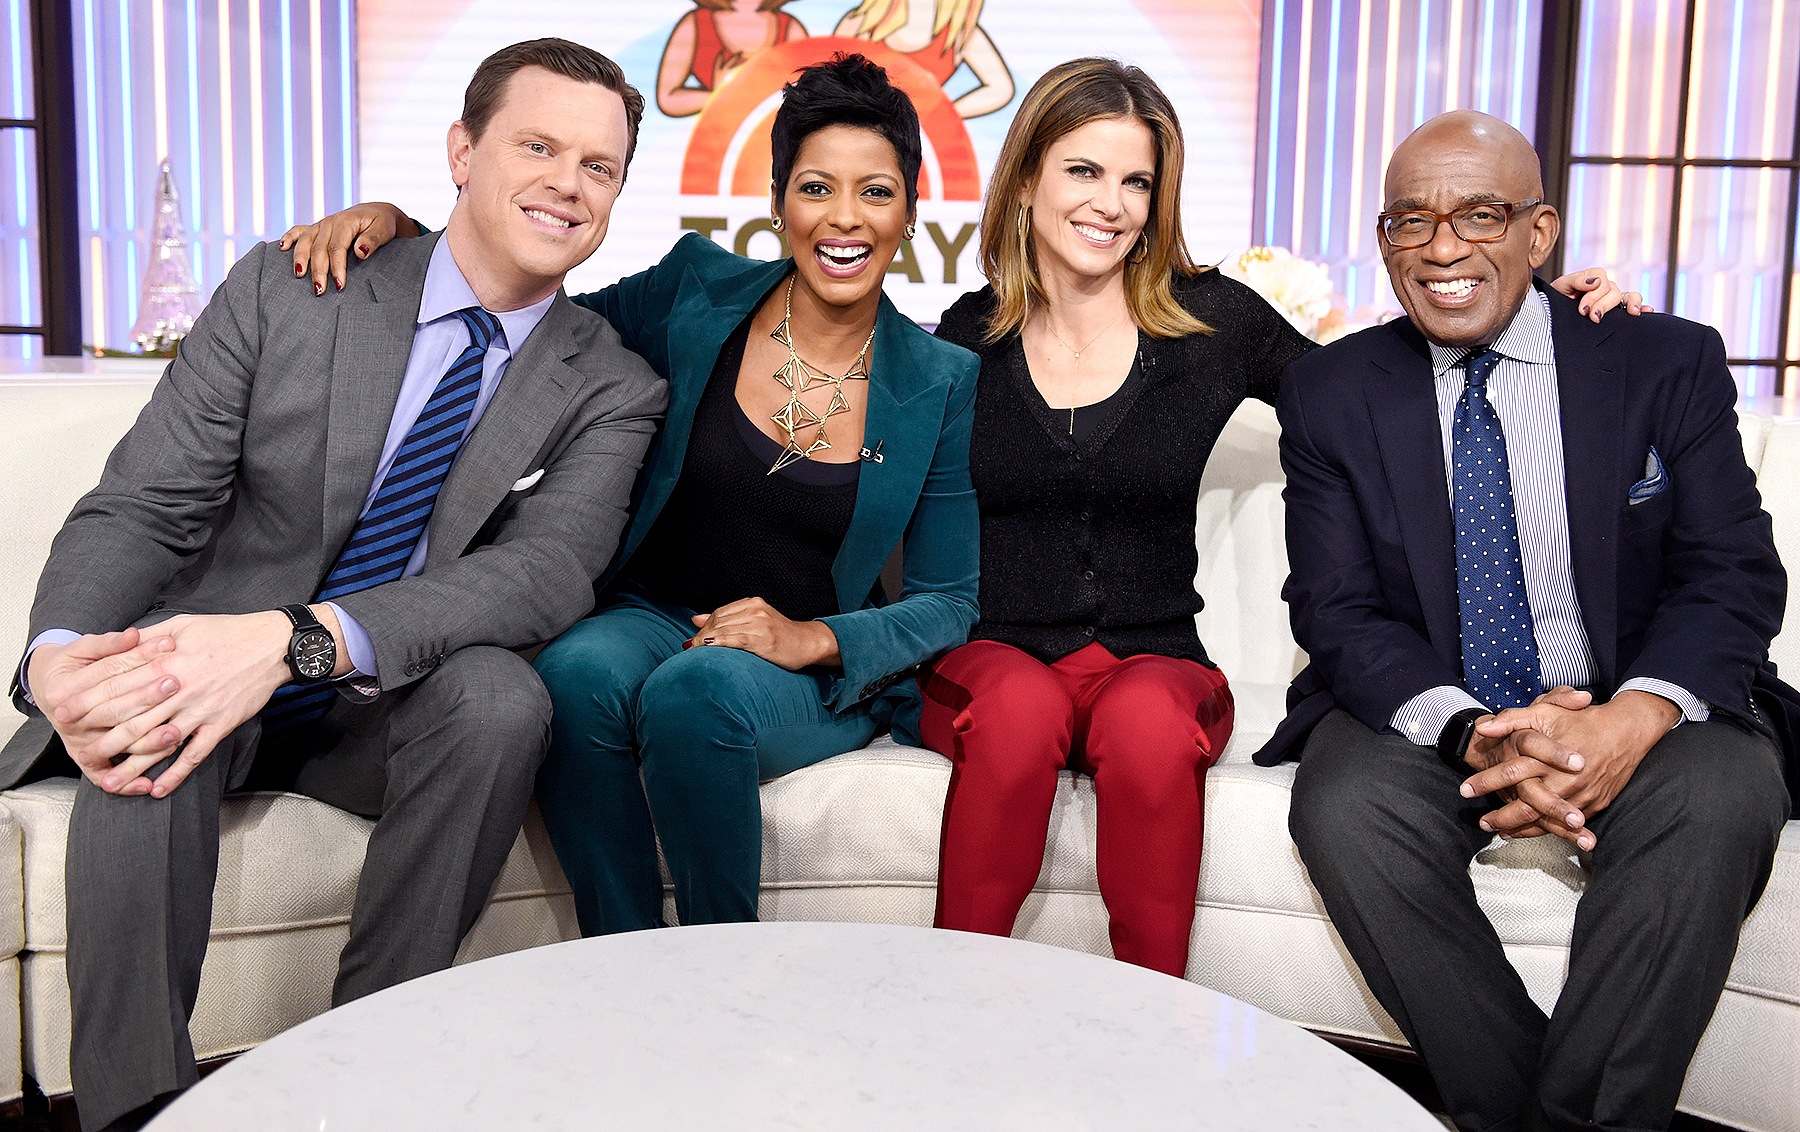 Willie Geist, Tamron Hall, Natalie Morales, and Al Roker appear on NBC News'